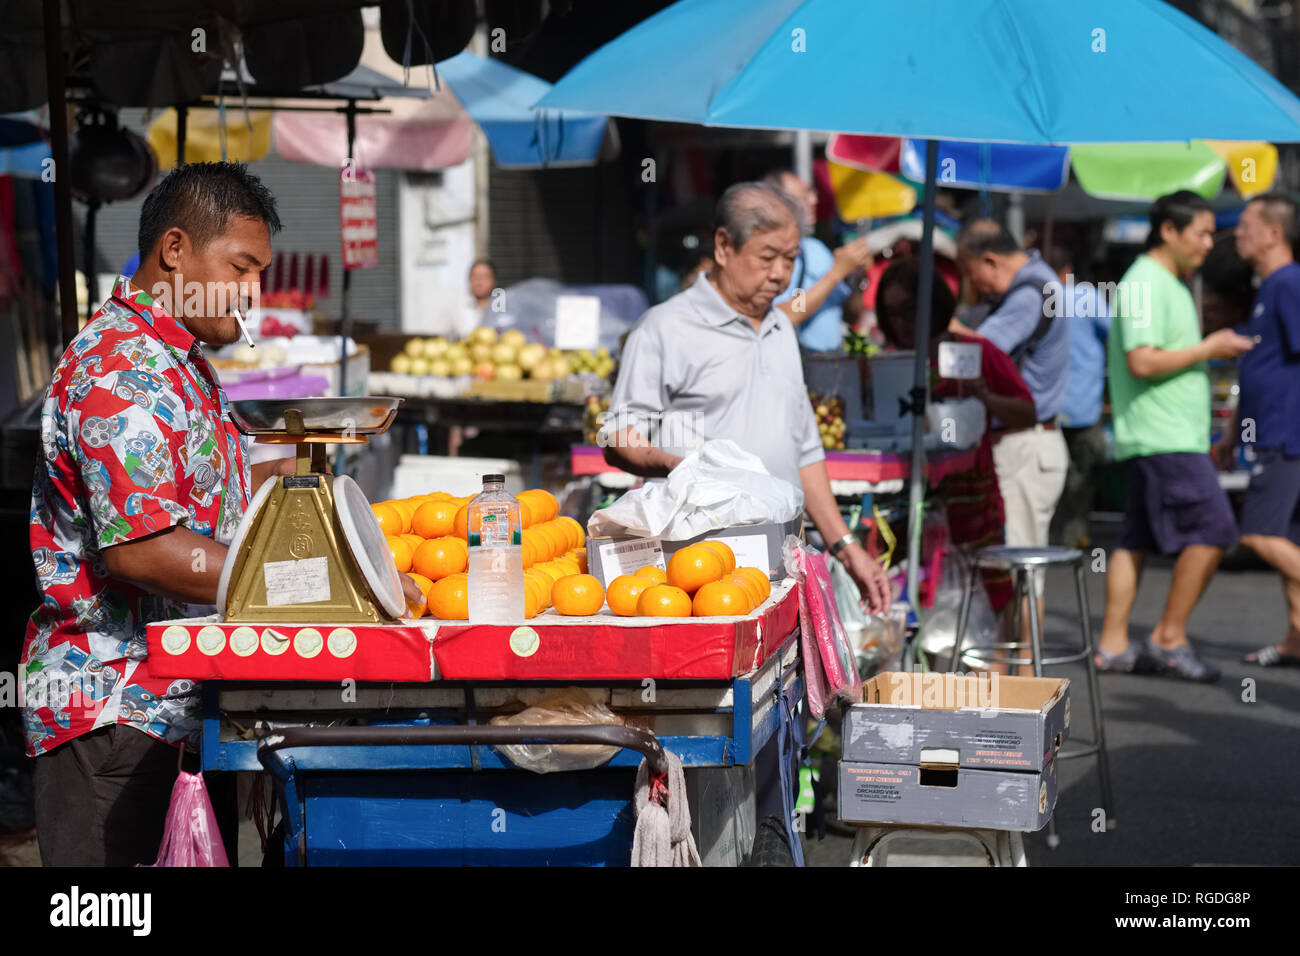 An orange vendor with his pushcart in the Old Market, Chinatown, Bangkok, Thailand - Stock Image